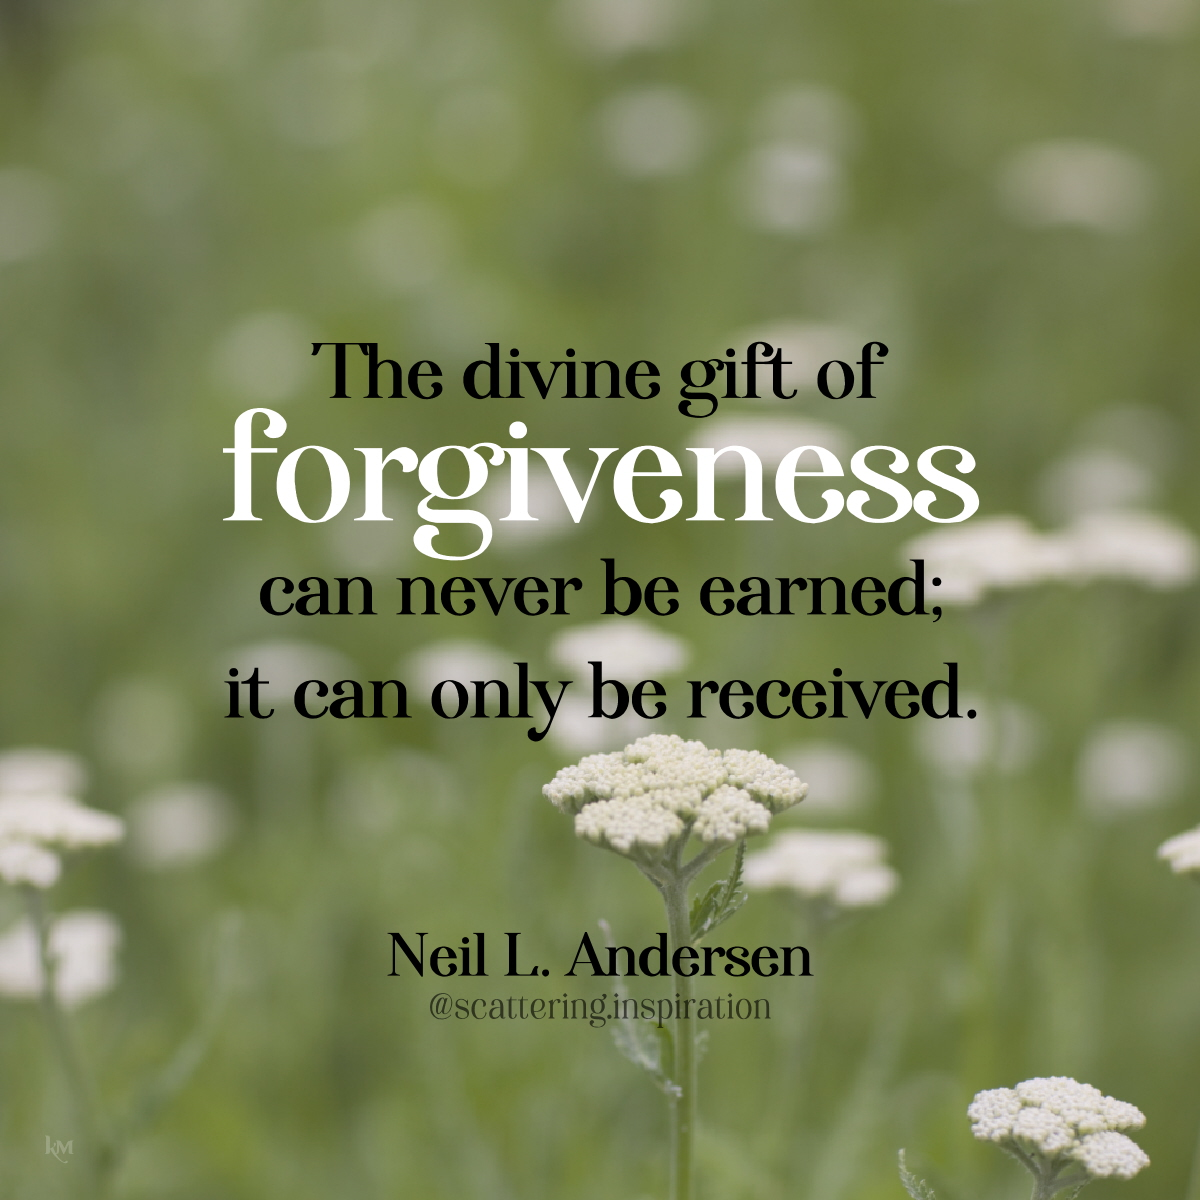 divine gift of forgiveness